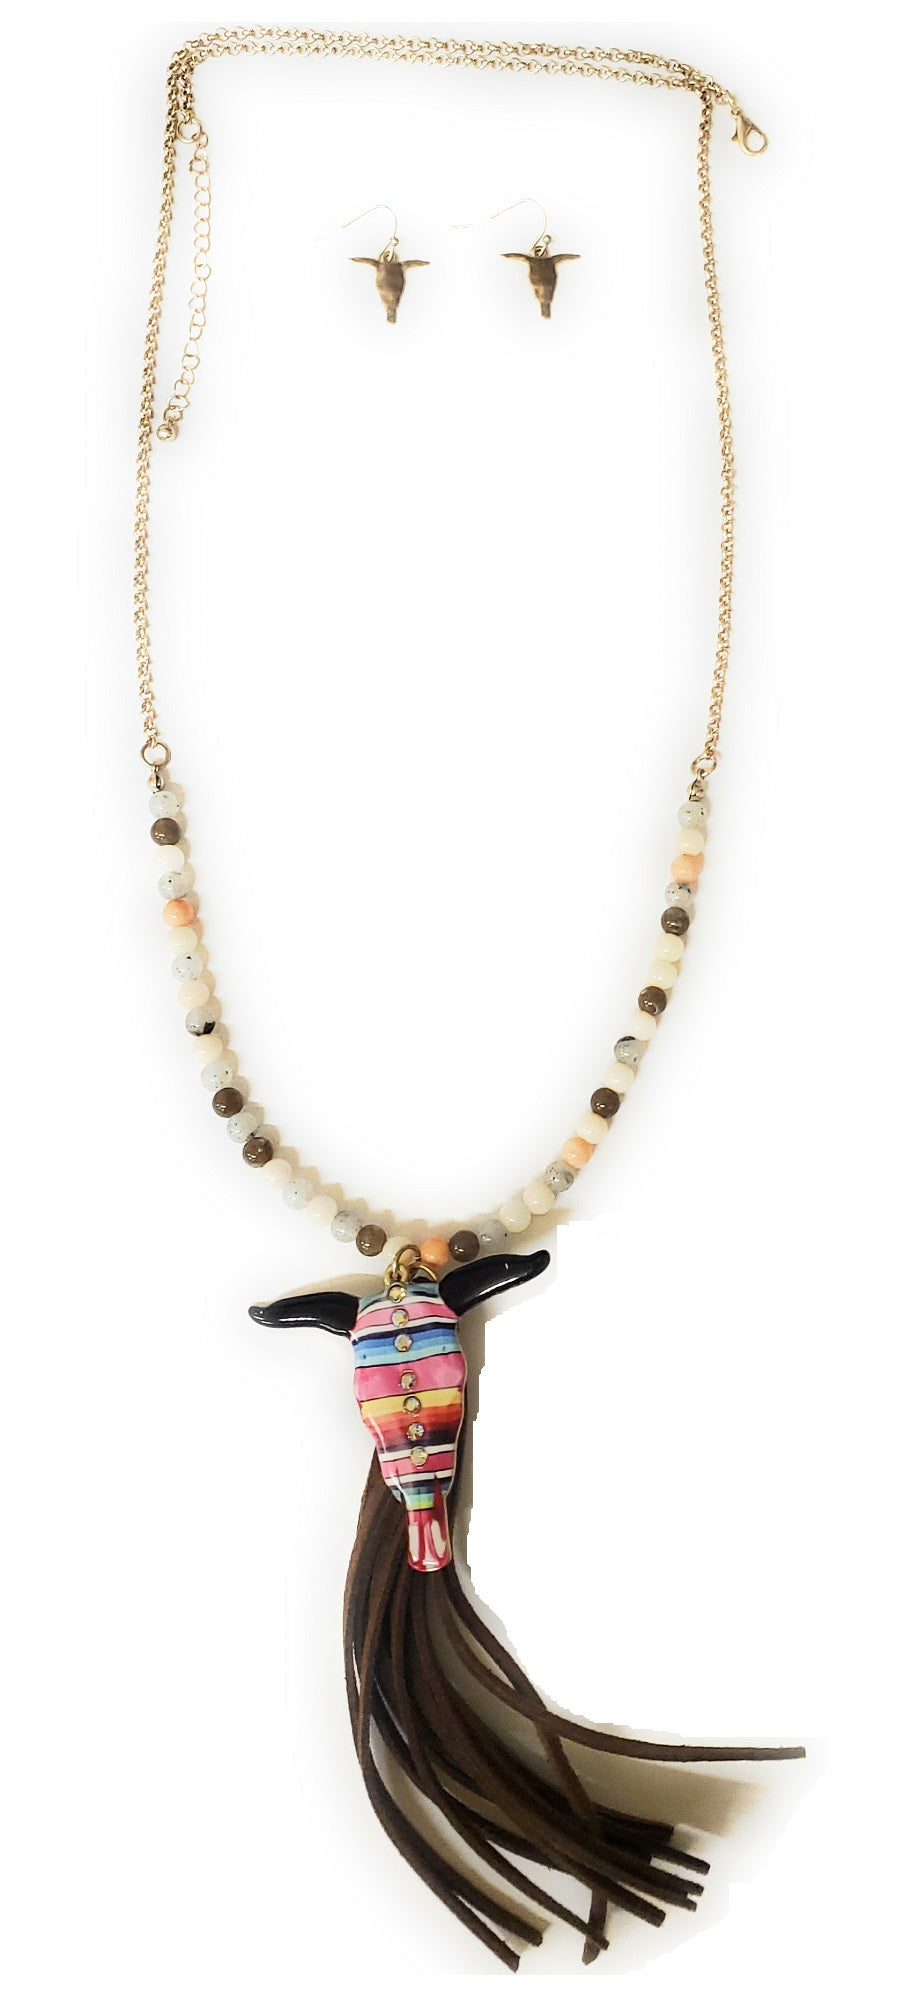 Tipi Serape Aztec Steer Longhorn Necklace Earrings Bling Rhinestone Tassel Jewelry